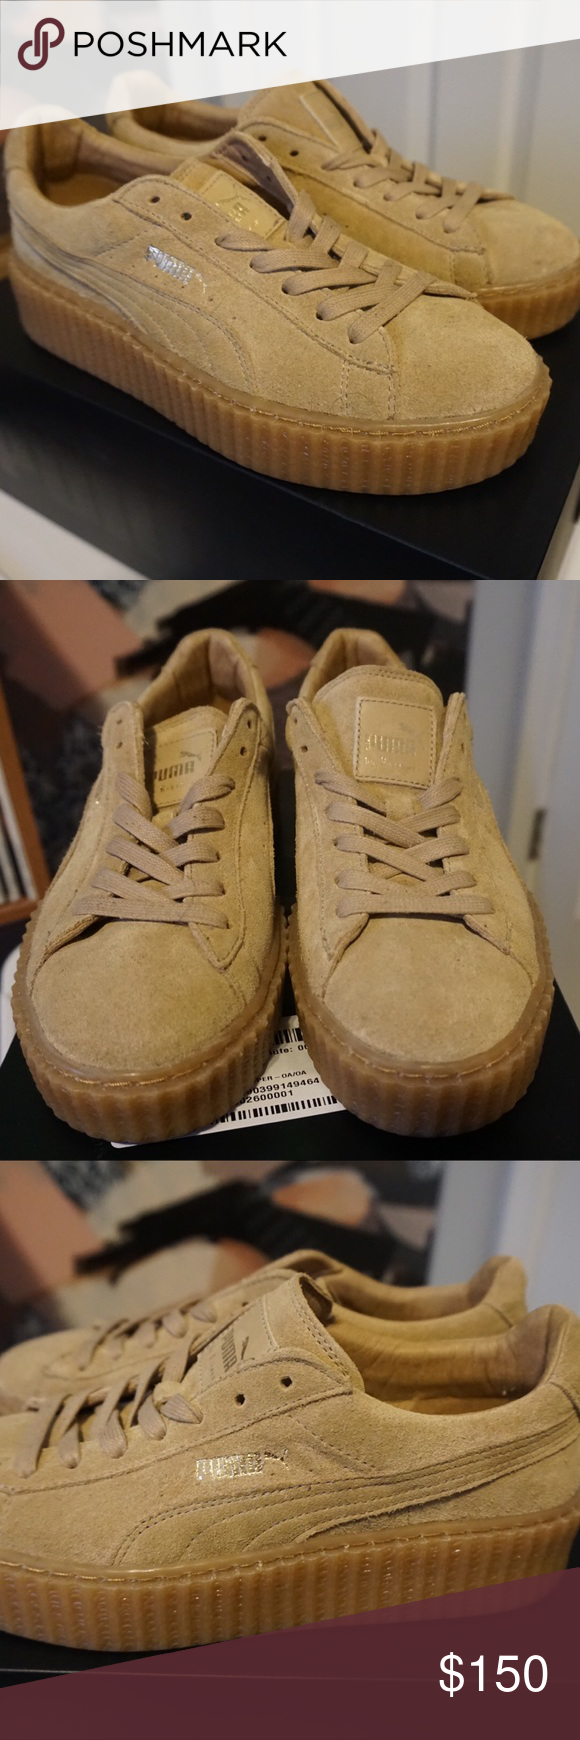 048895e7c41a Rihanna x Puma Suede Creepers Fenty Brand new in original box. Runs small  in size. Size 7.5 but fits a size 7. Puma Shoes Sneakers